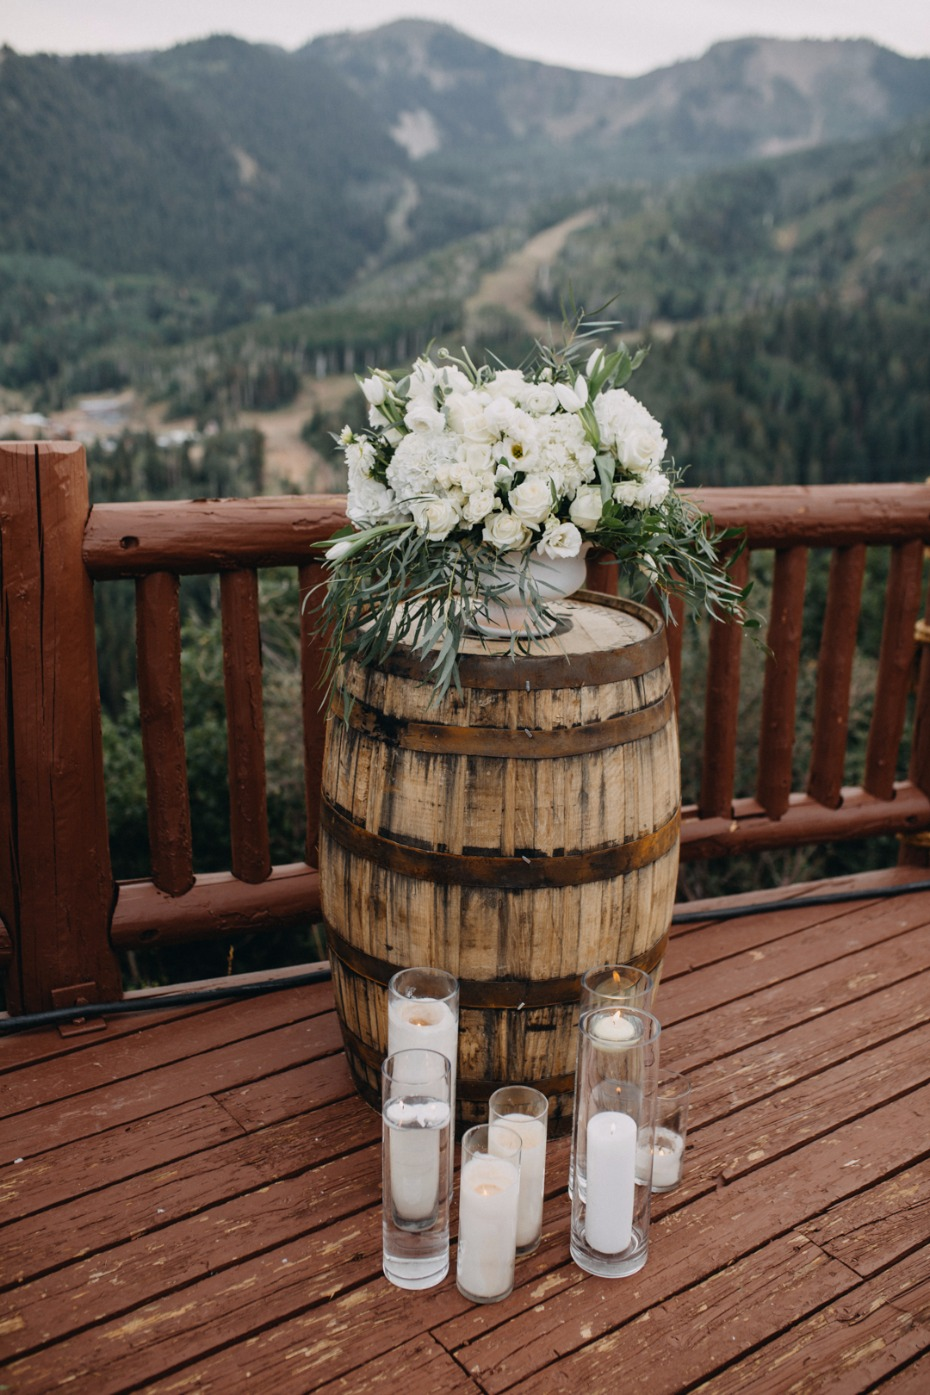 rustic chic wedding decor for your mountain wedding ceremony